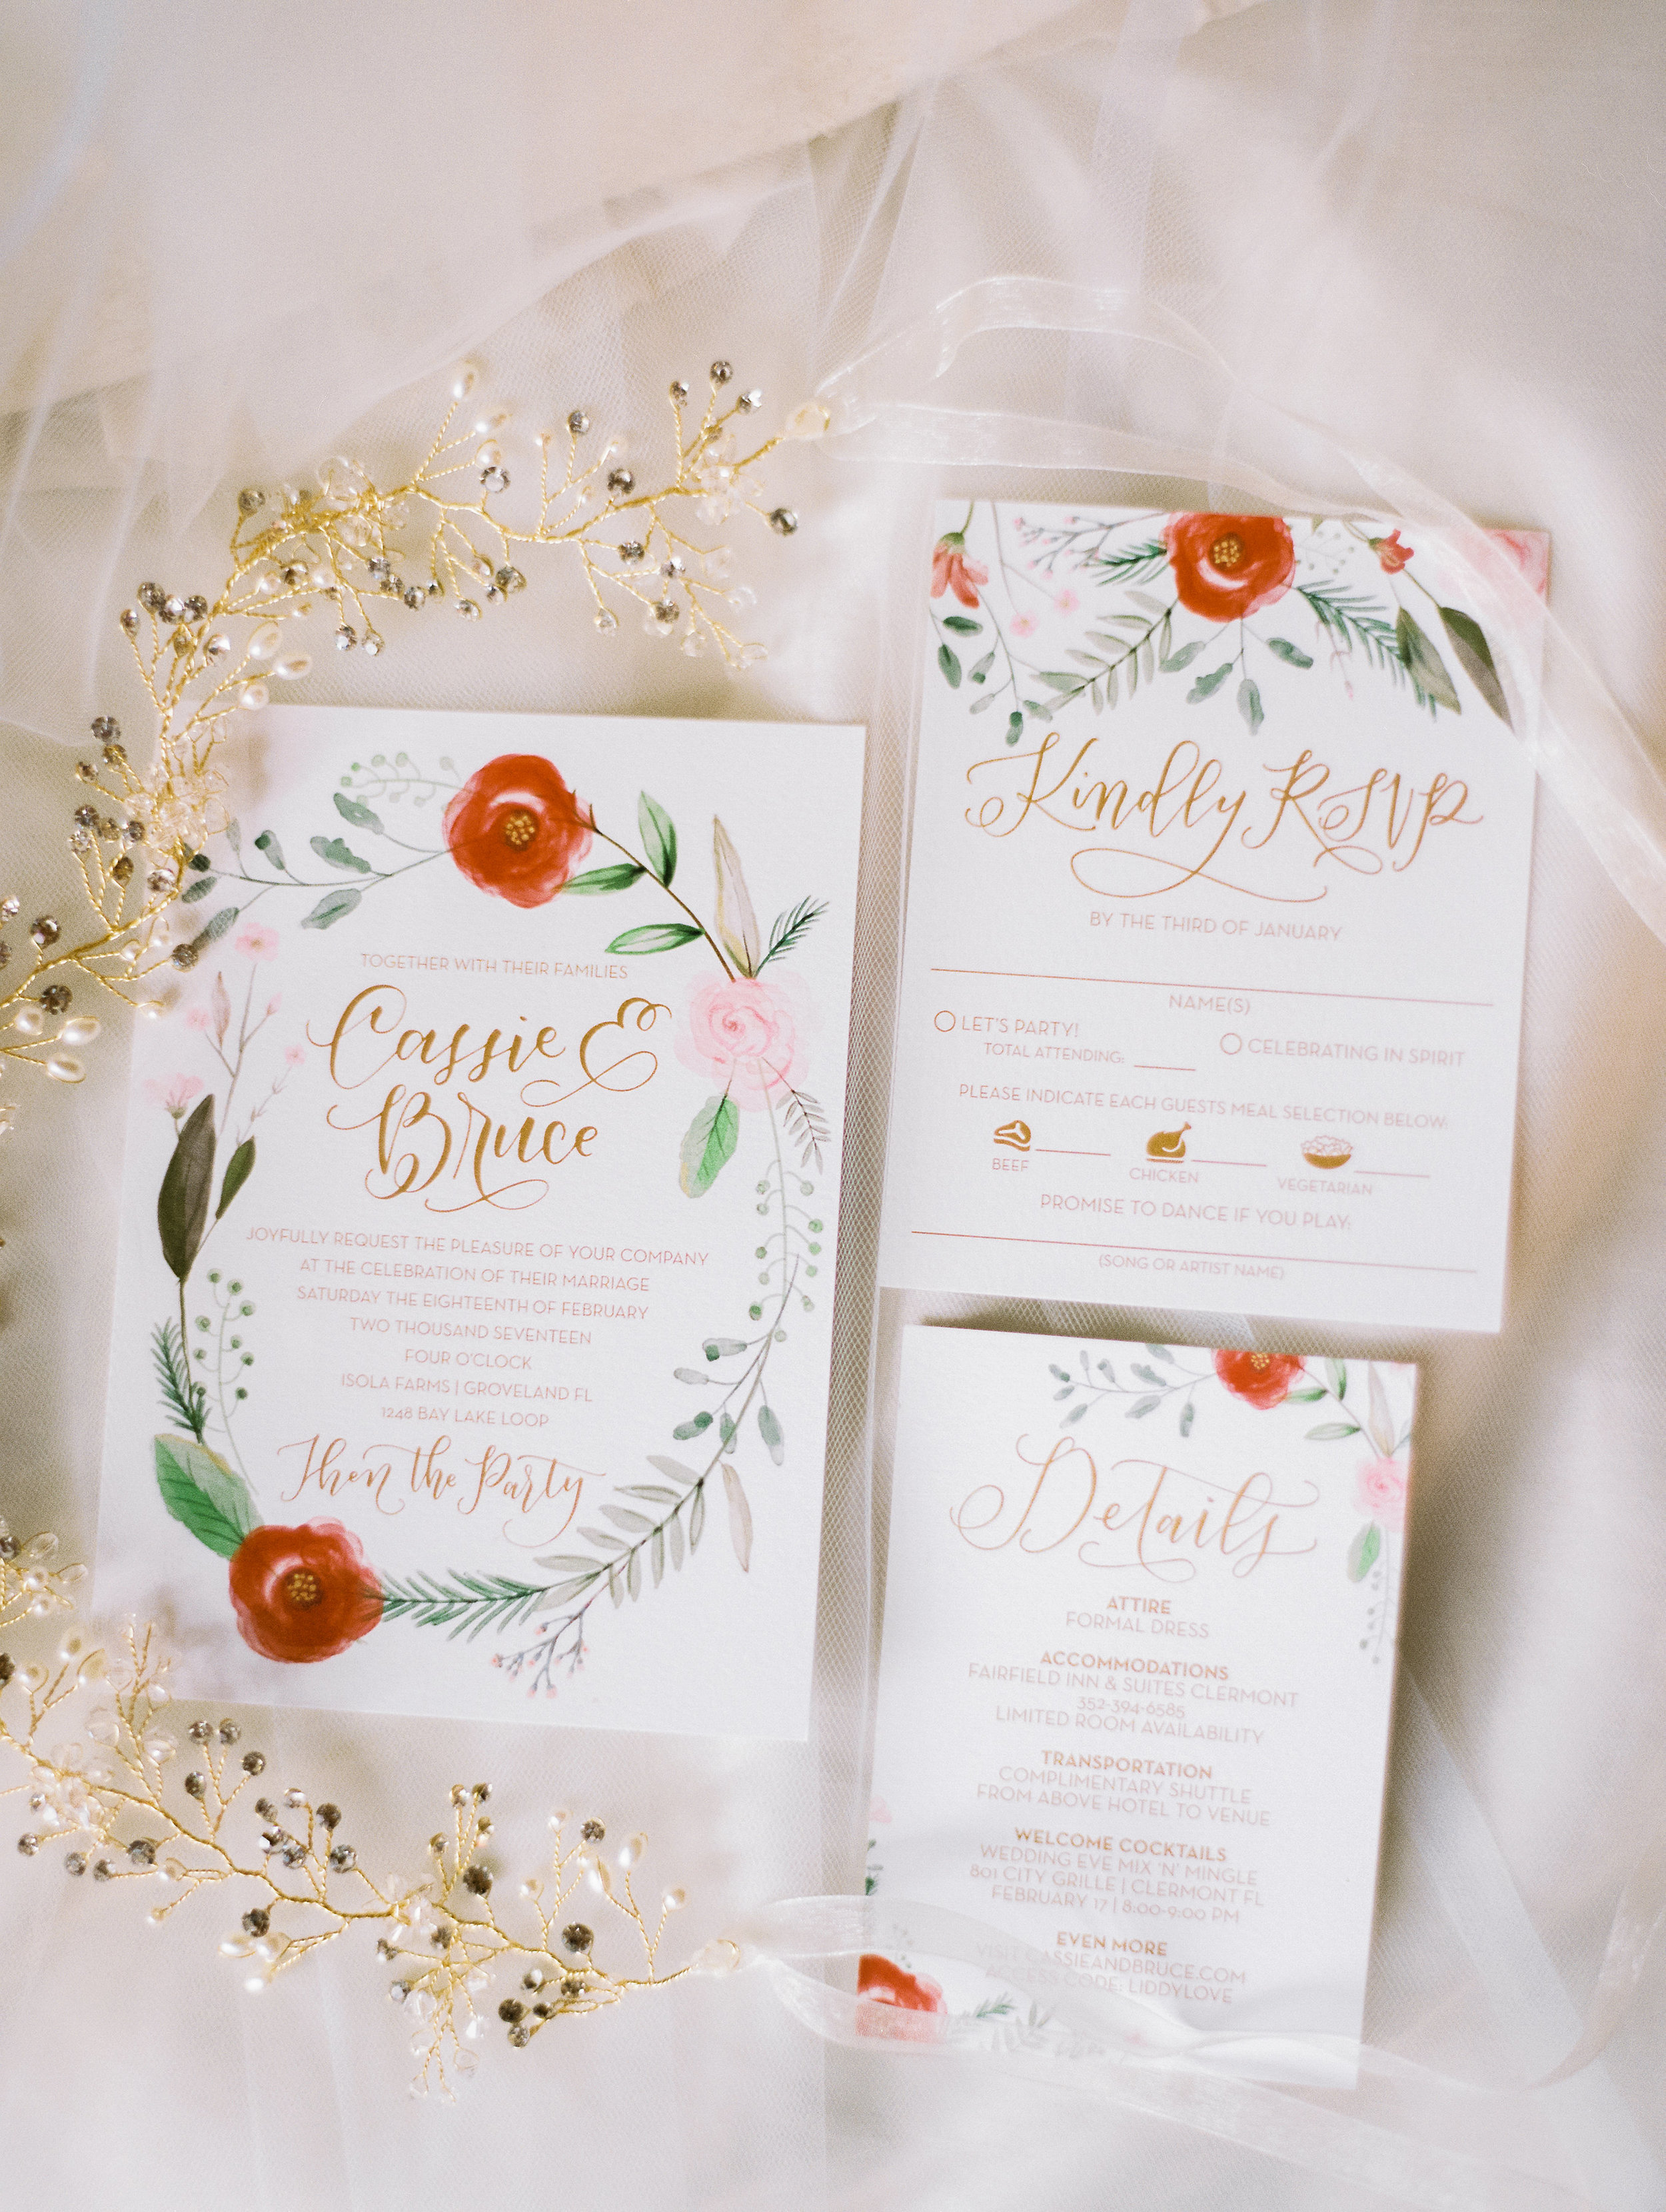 Wedding invitation suite by Feathered Heart Prints